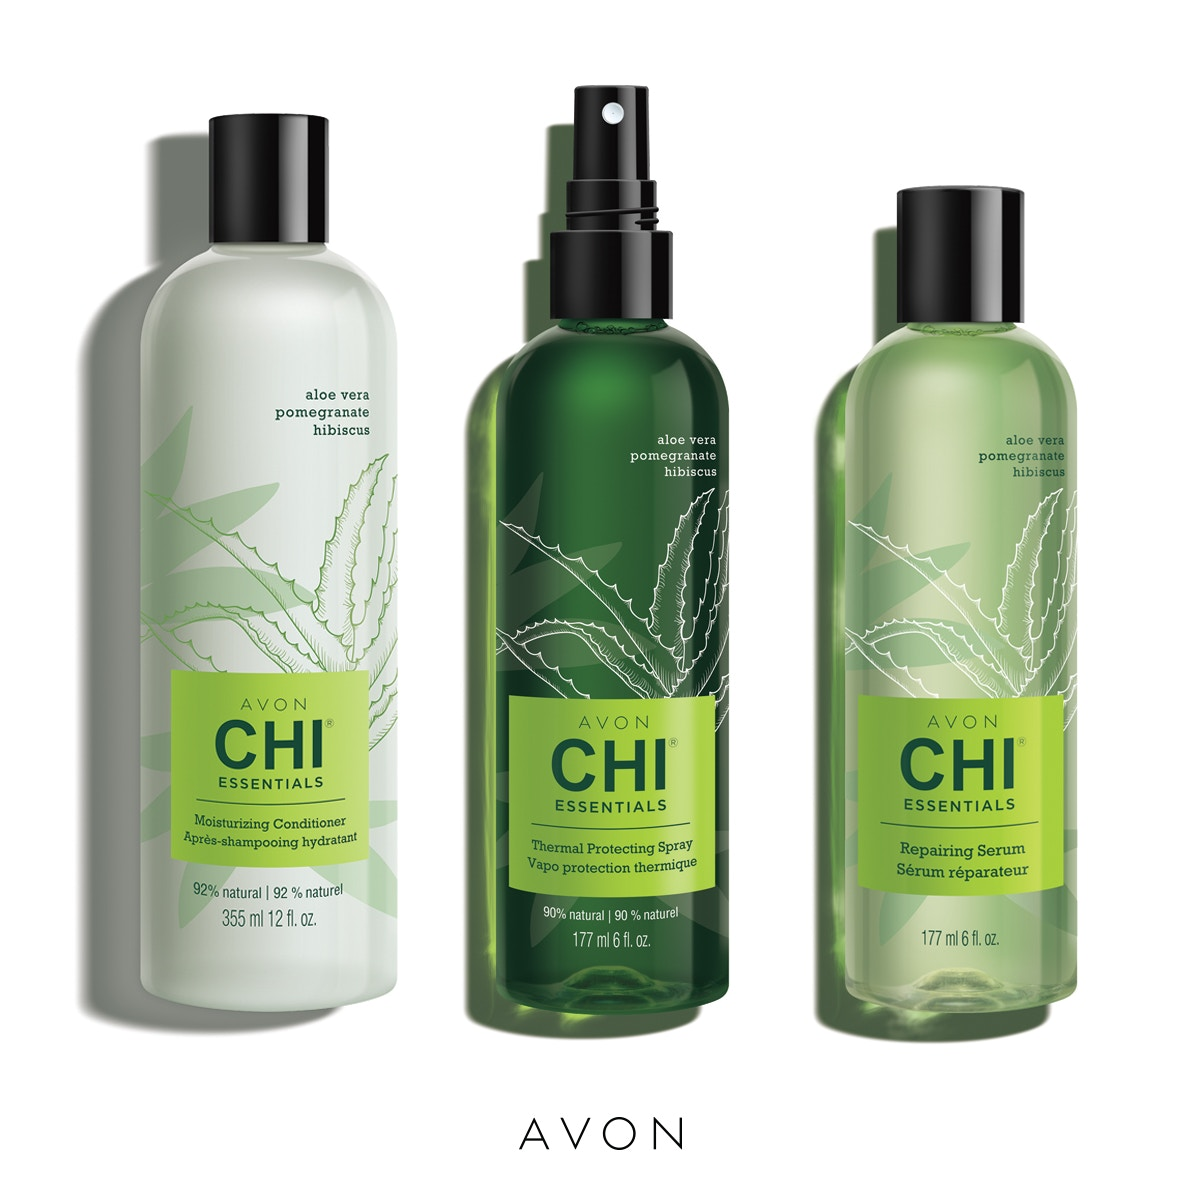 http://go.youravon.com/3jfmjc #haircolor #haircare #chi #shampoo #conditioner #treatments #redhead #blonde #serum #graycoverage #silvers #naturals #warmspic.twitter.com/OdEDg59cRt